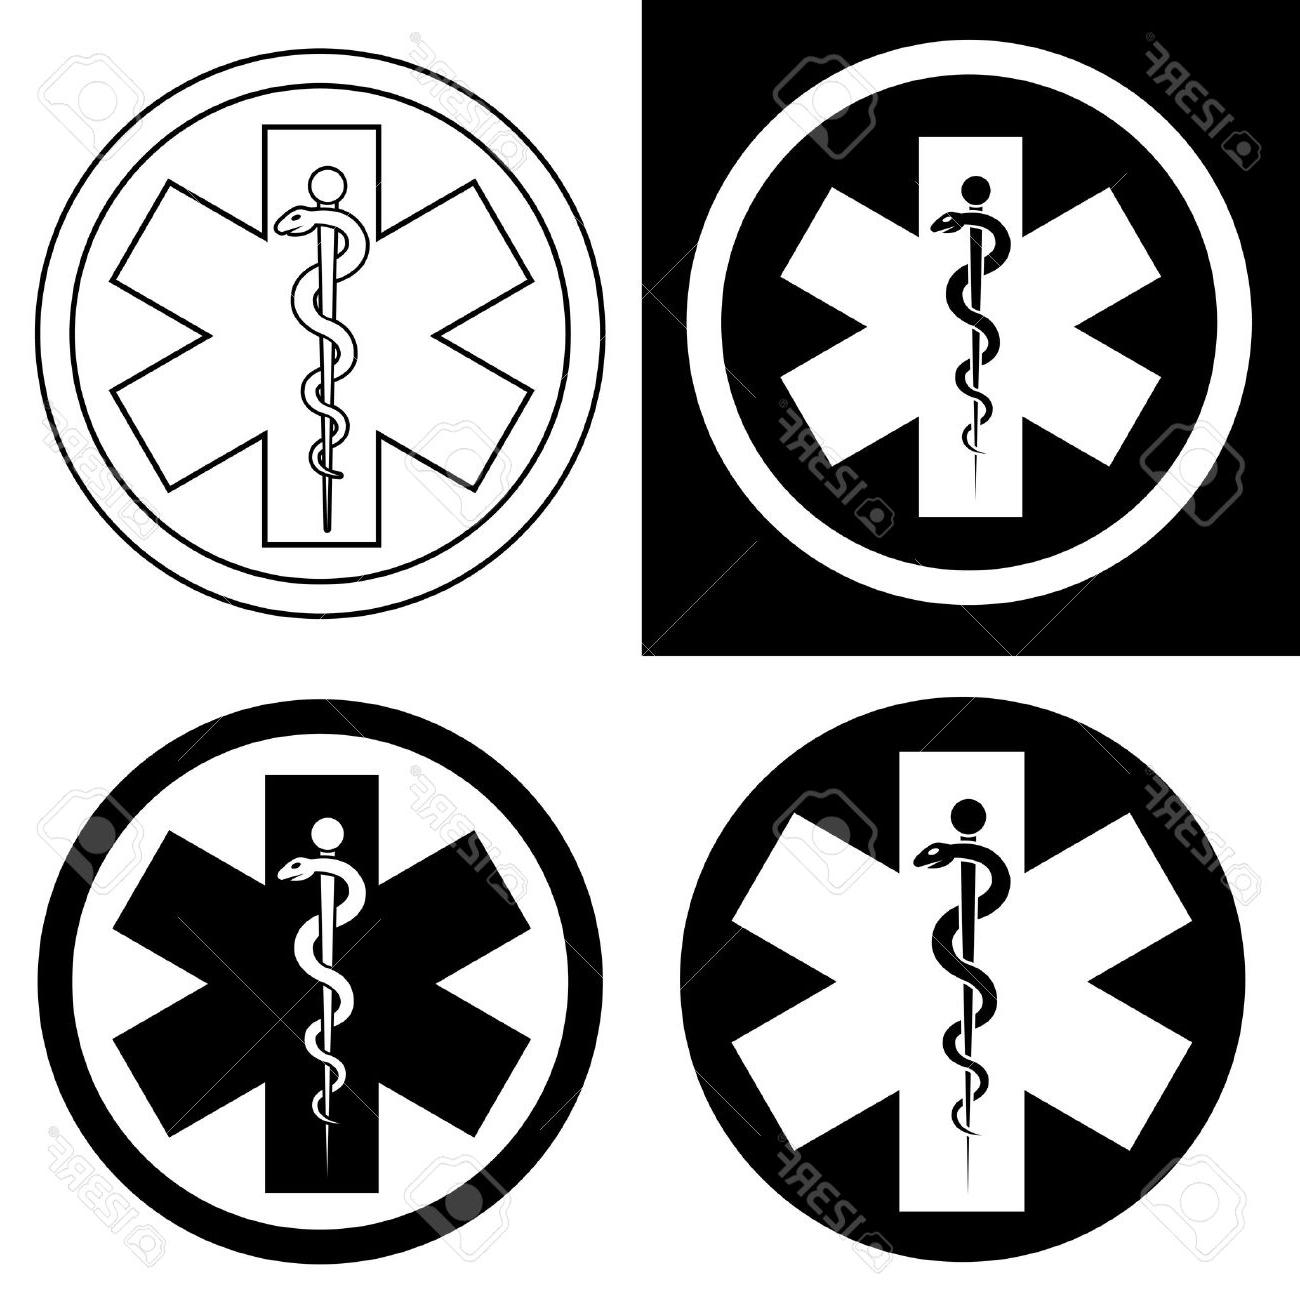 Medical Symbol Drawing At Getdrawings Free For Personal Use